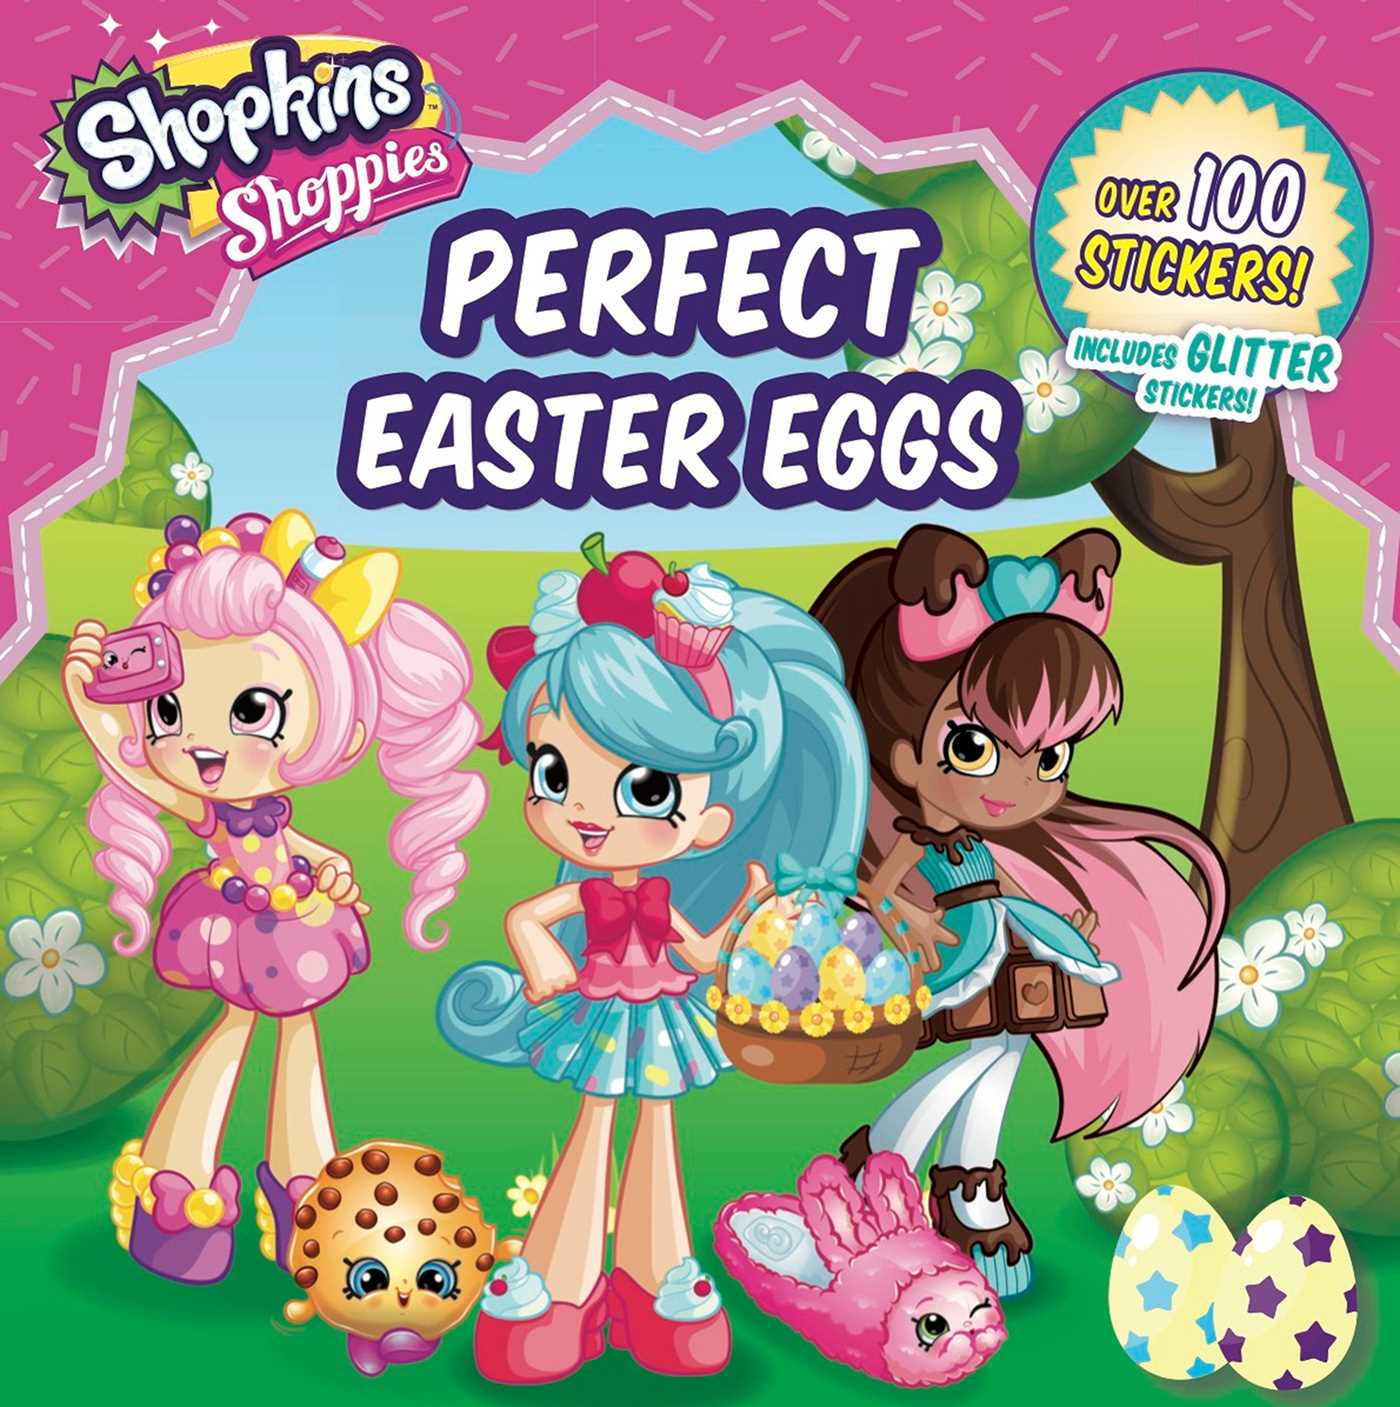 Shoppies perfect easter eggs 9781499806793 hr